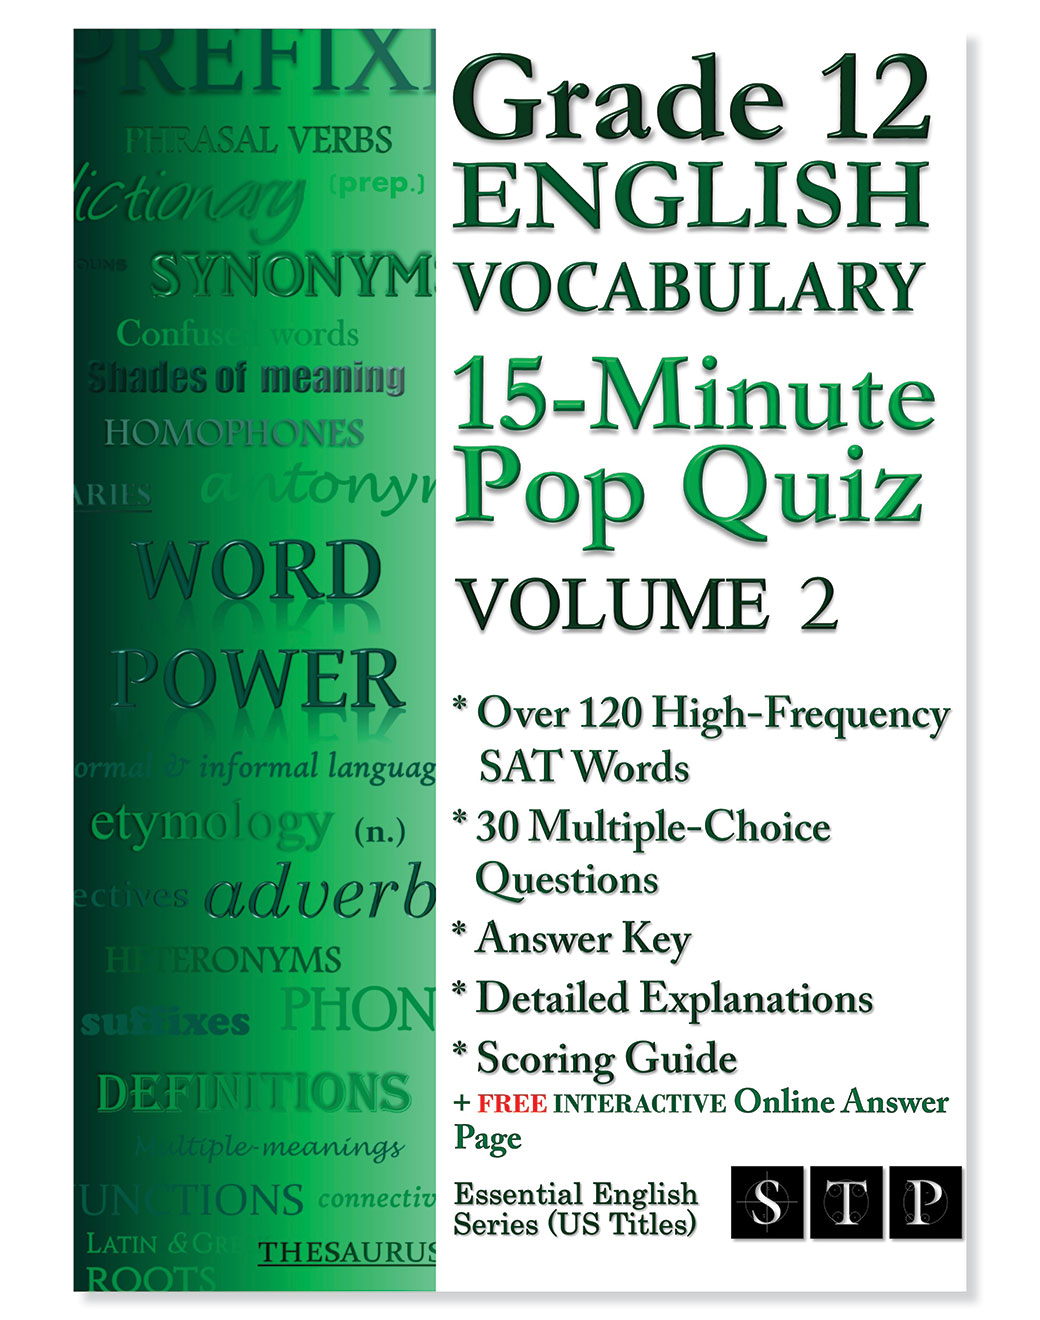 STP Books Grade 12 English Vocabulary 15-Minute Pop Quiz Volume 2